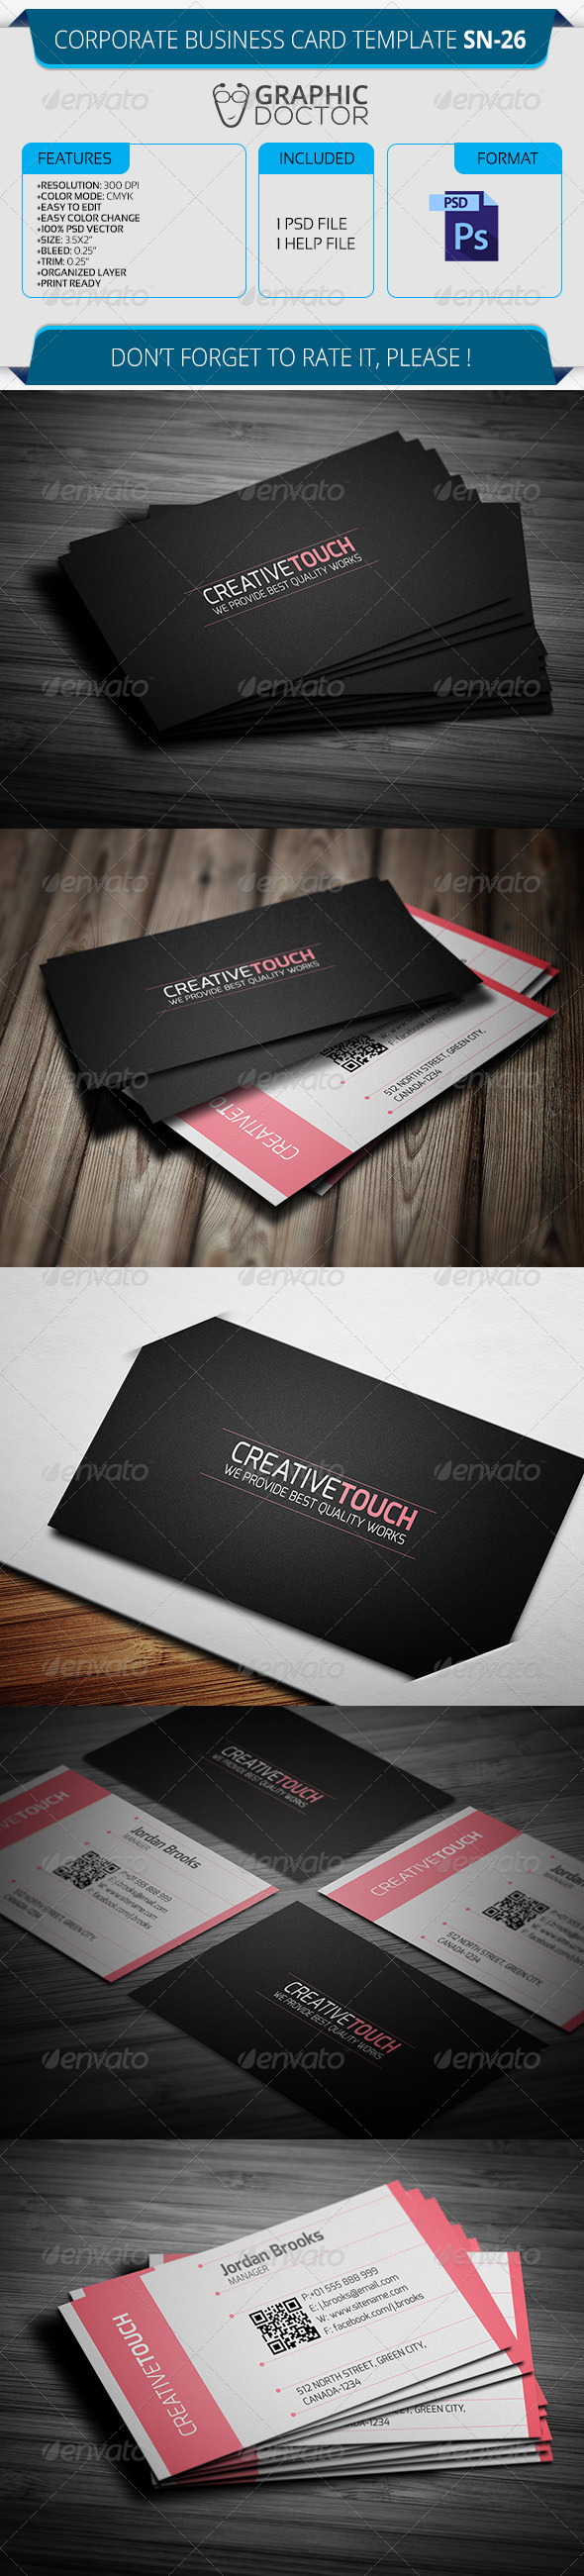 Corporate Business Card Template SN-26